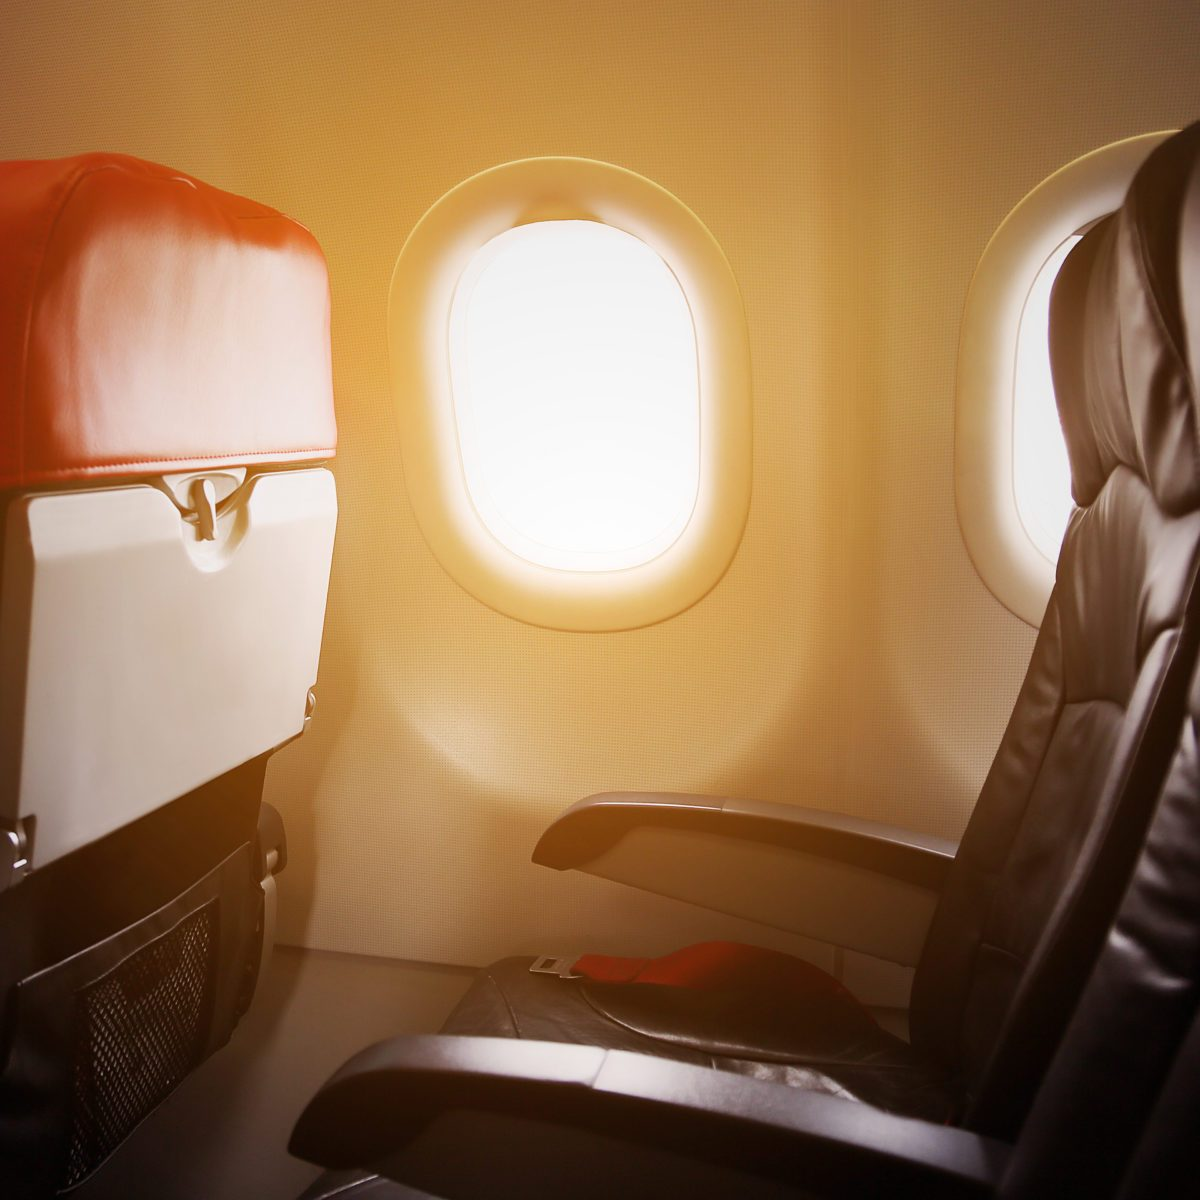 Airplane Chimes: What Those Pings on Airplanes Mean